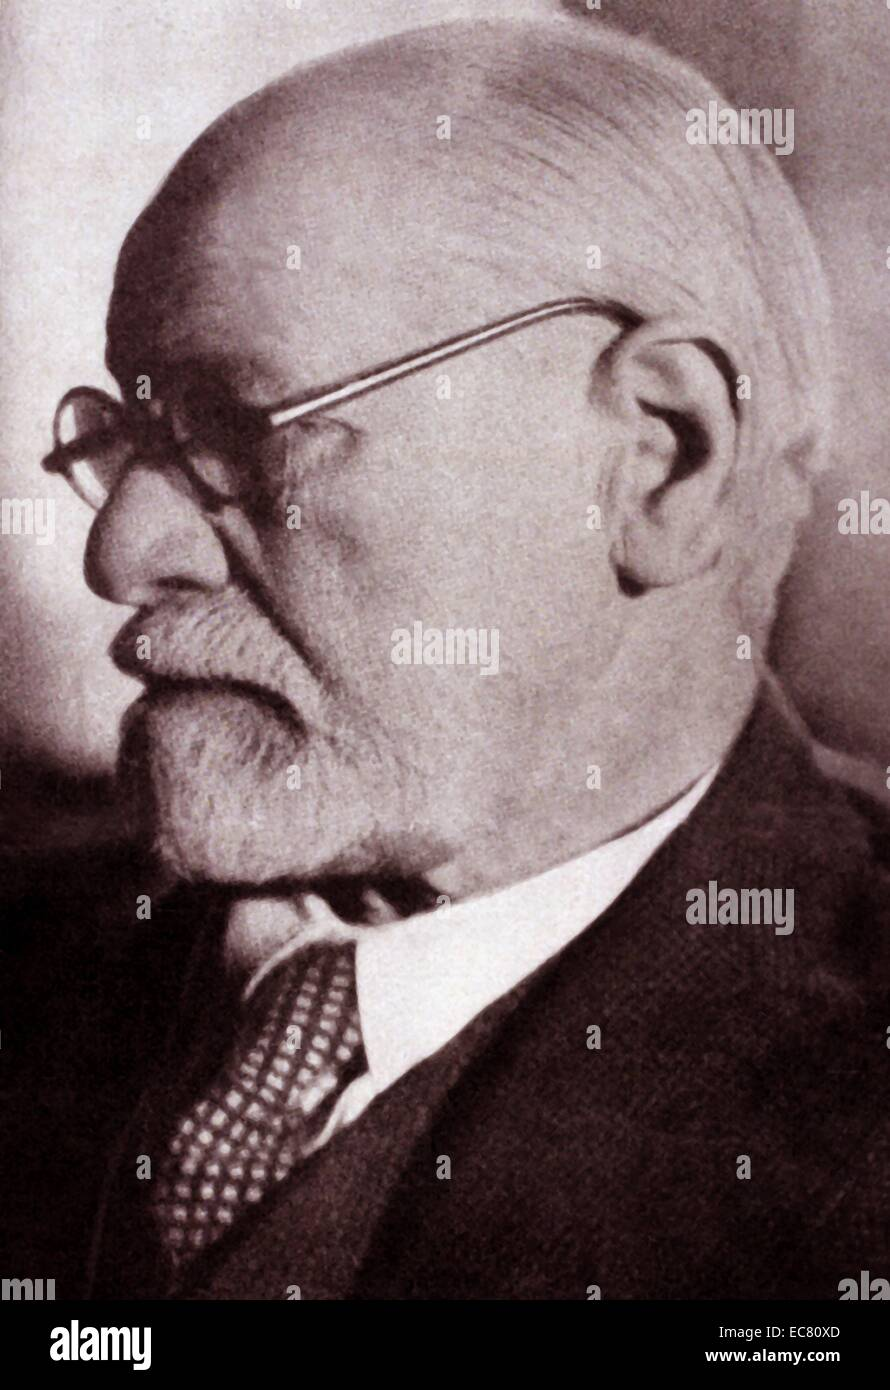 Sigmund Freud (1856– 1939) was an Austrian neurologist who became known as the founding father of psychoanalysis. - Stock Image